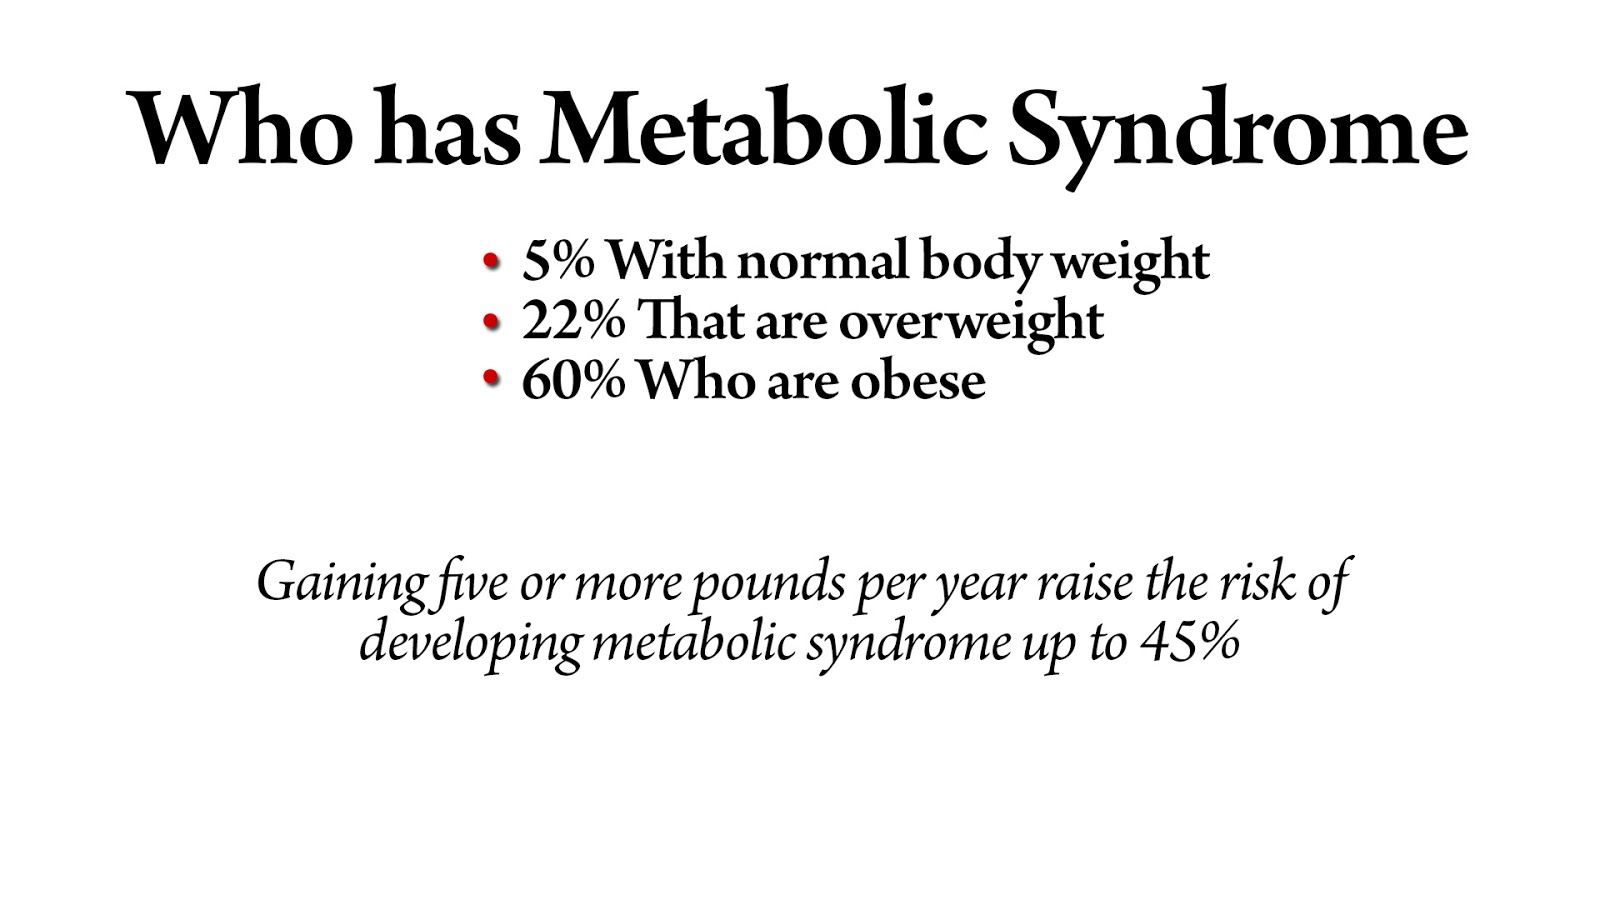 Who has Metabolic Syndrome